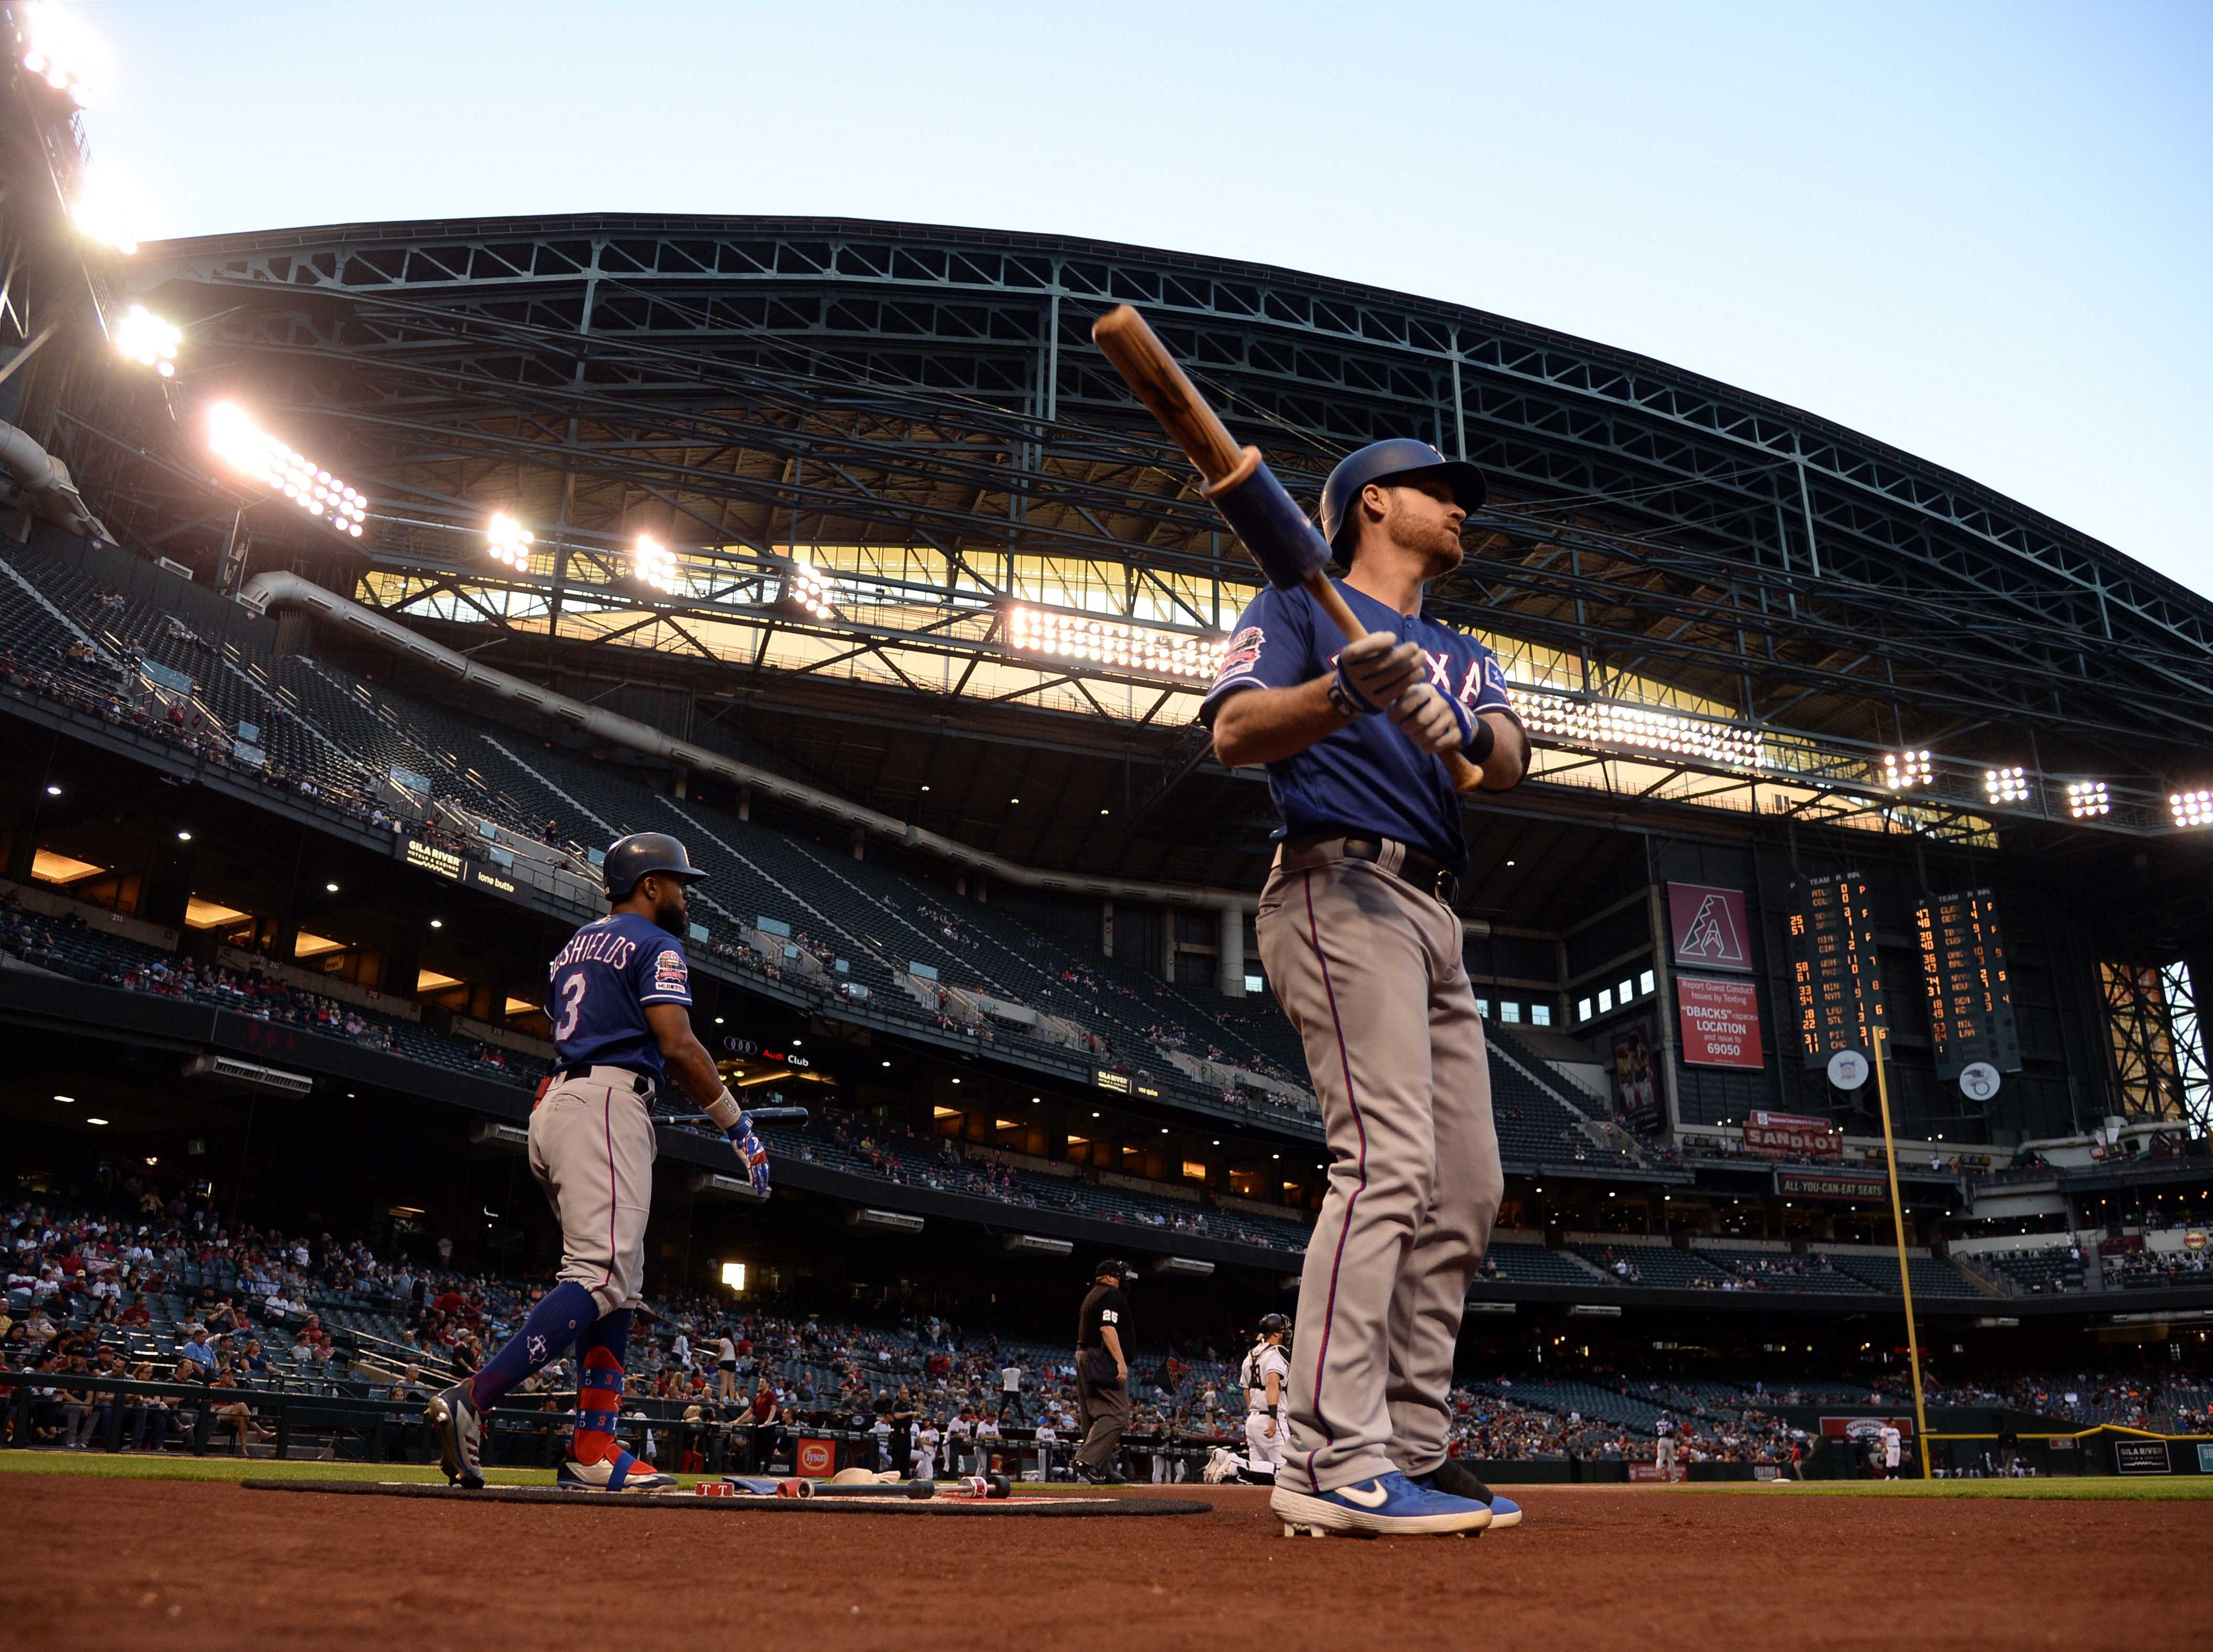 Apr 10, 2019; Phoenix, AZ, USA; Texas Rangers second baseman Logan Forsythe (41) and Texas Rangers left fielder Delino DeShields (3) wait in the on dec area against the Arizona Diamondbacks during the first inning at Chase Field. Mandatory Credit: Joe Camporeale-USA TODAY Sports